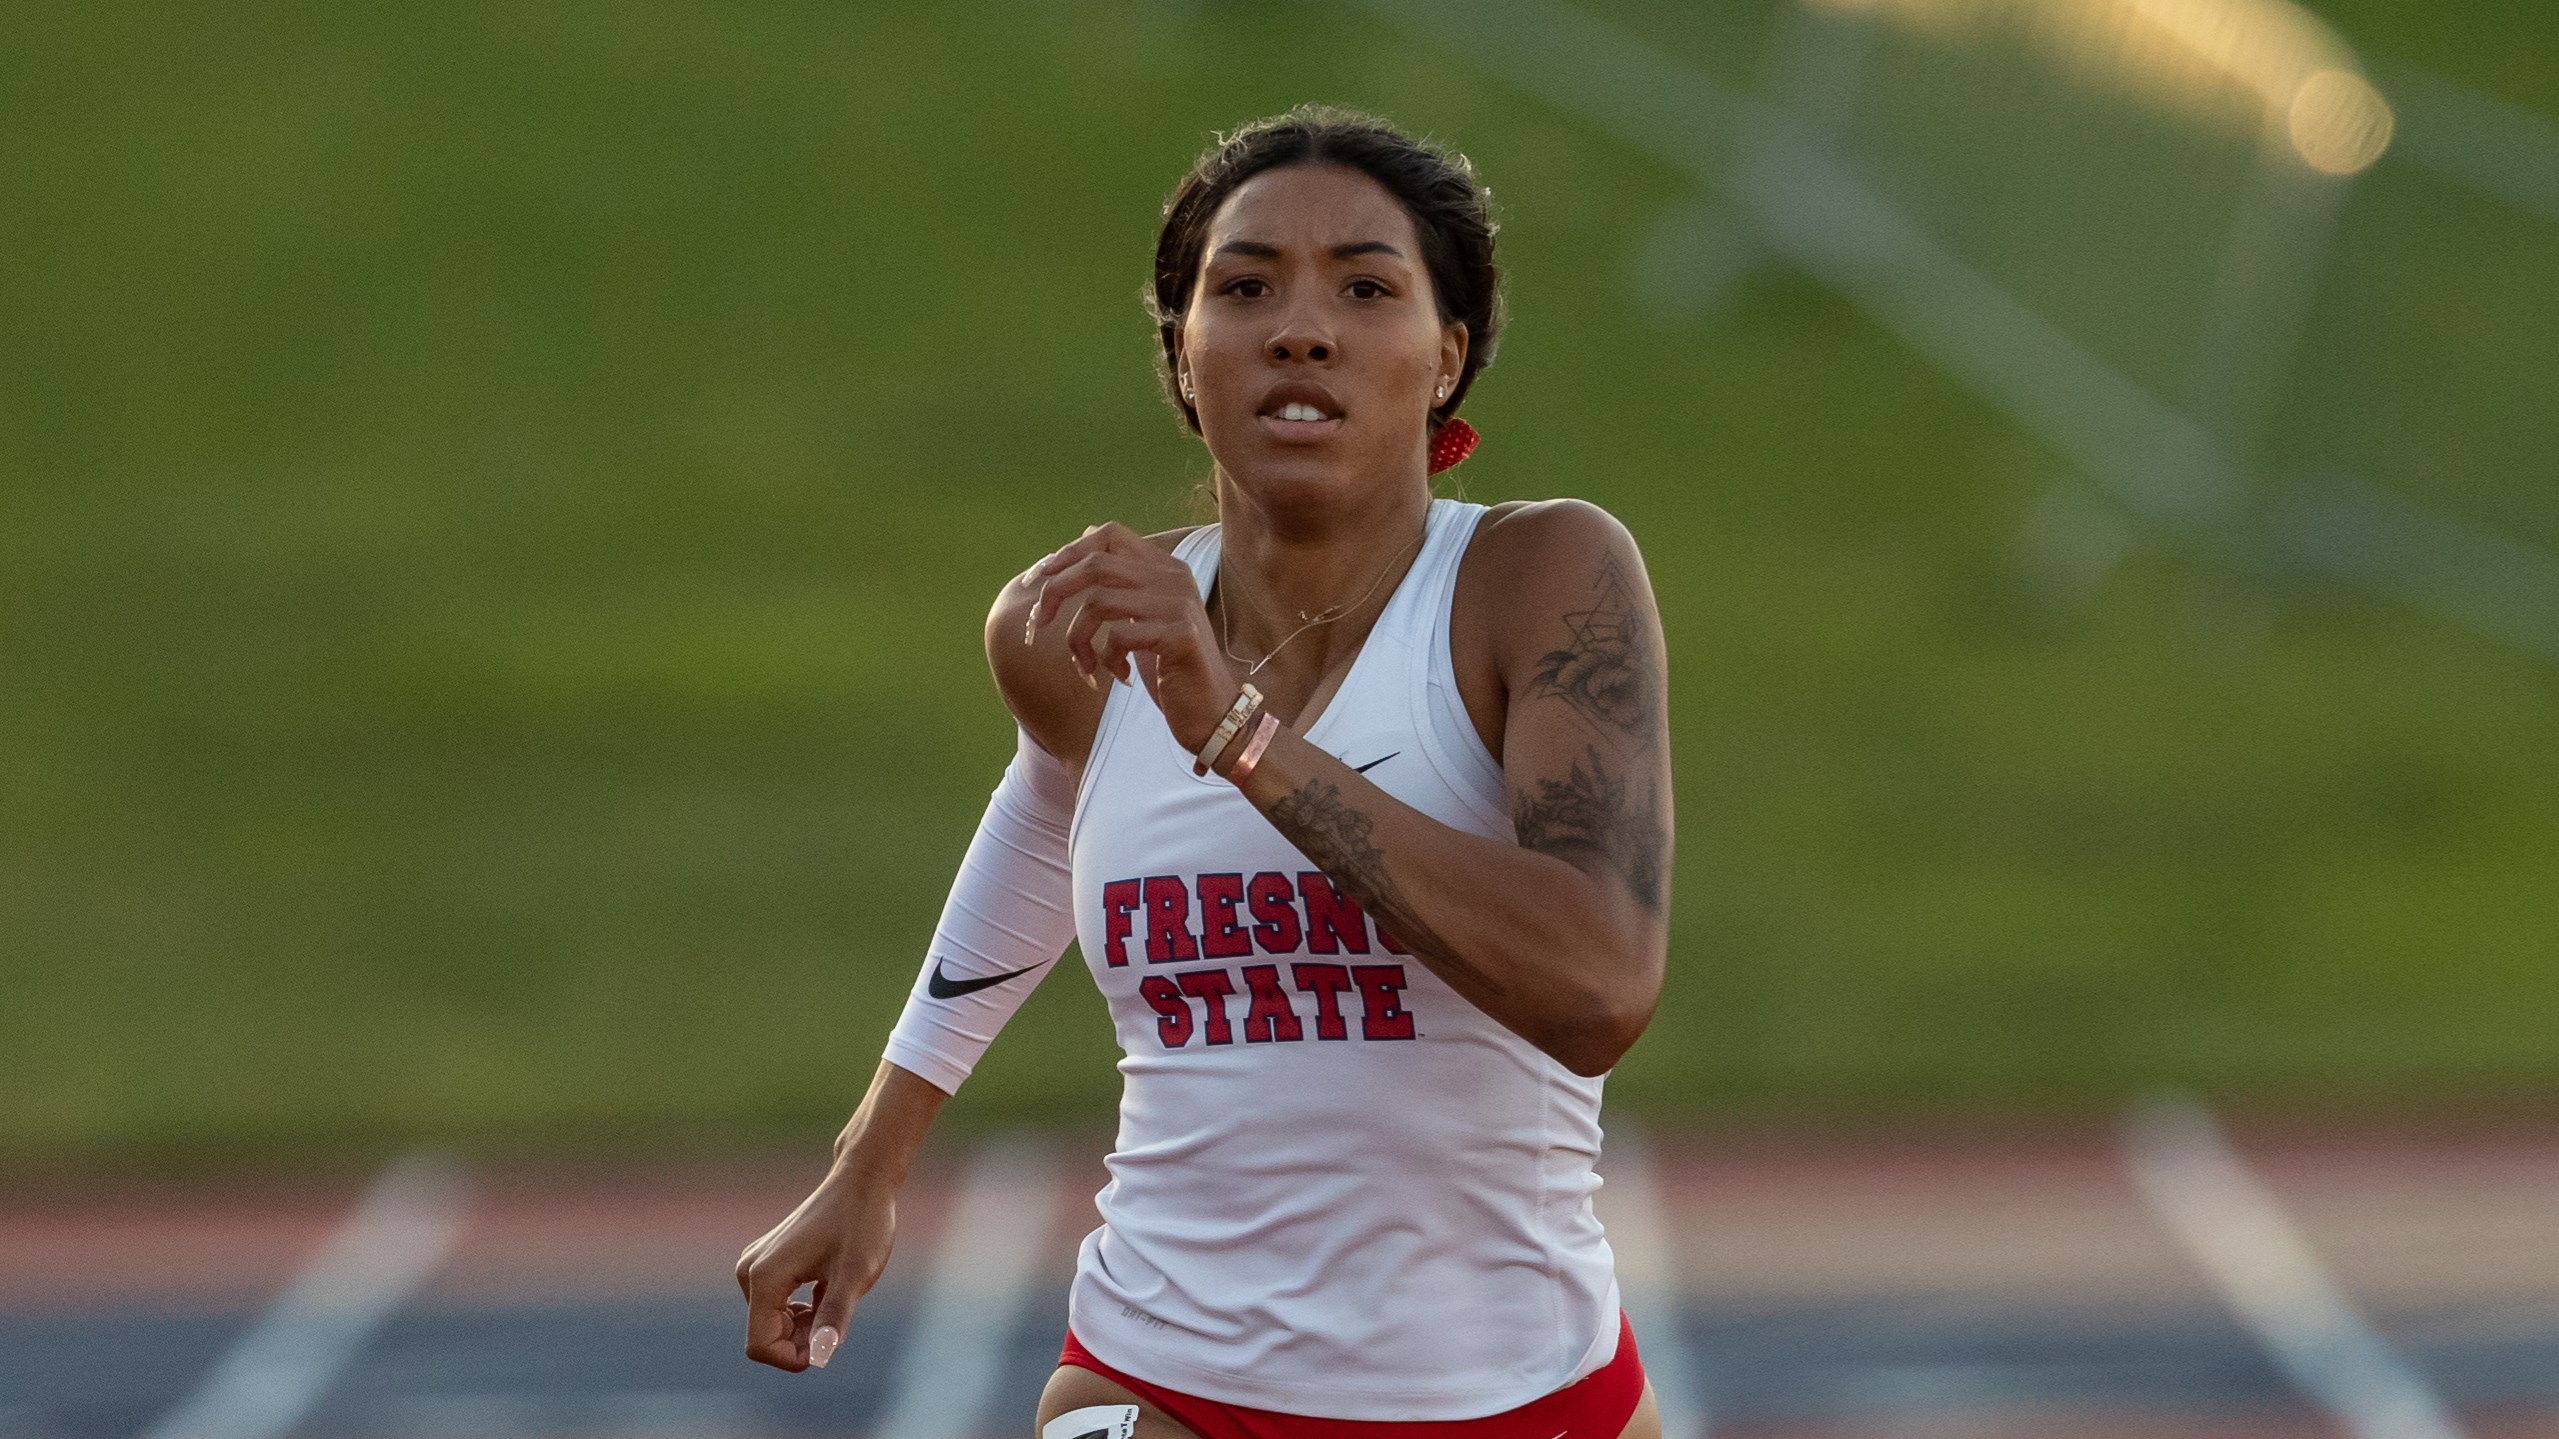 Track & Field - Fresno State Athletics